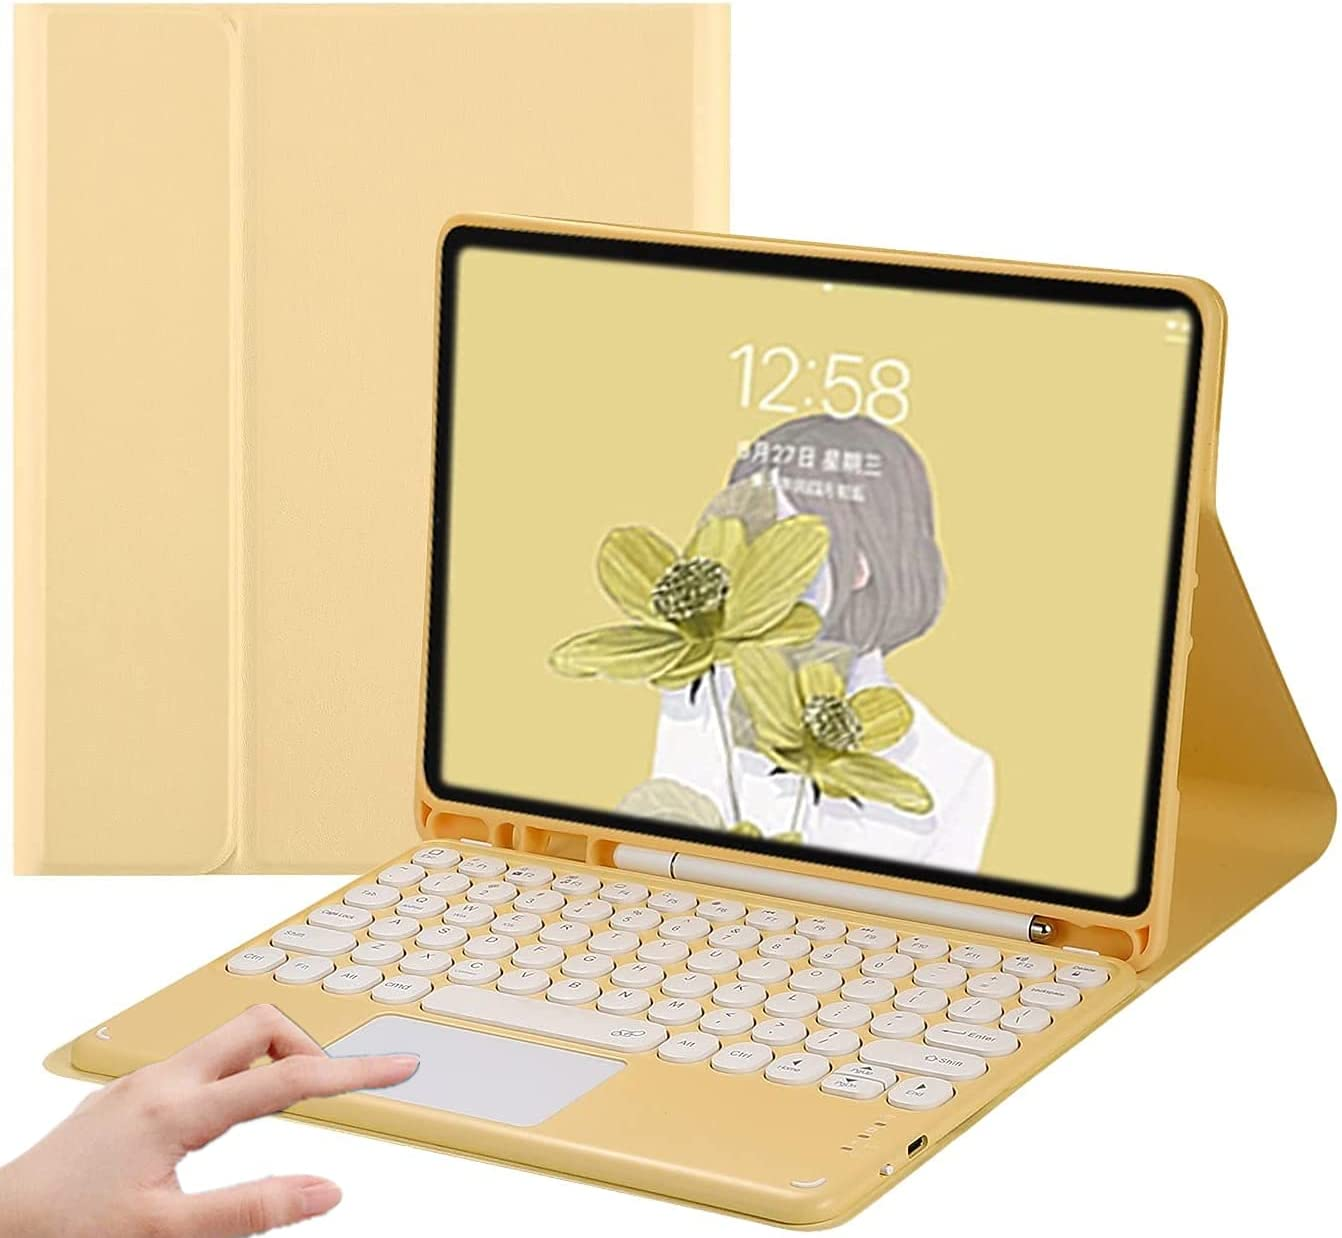 Keyboard Case for iPad Air 4 2020-Touchpad Detachable Keyboard with Pencil Holder -Slim Leather Folio Smart Cover for iPad Air 4 10.9 inch (iPad Air 4 10.9 inch, Yellow)